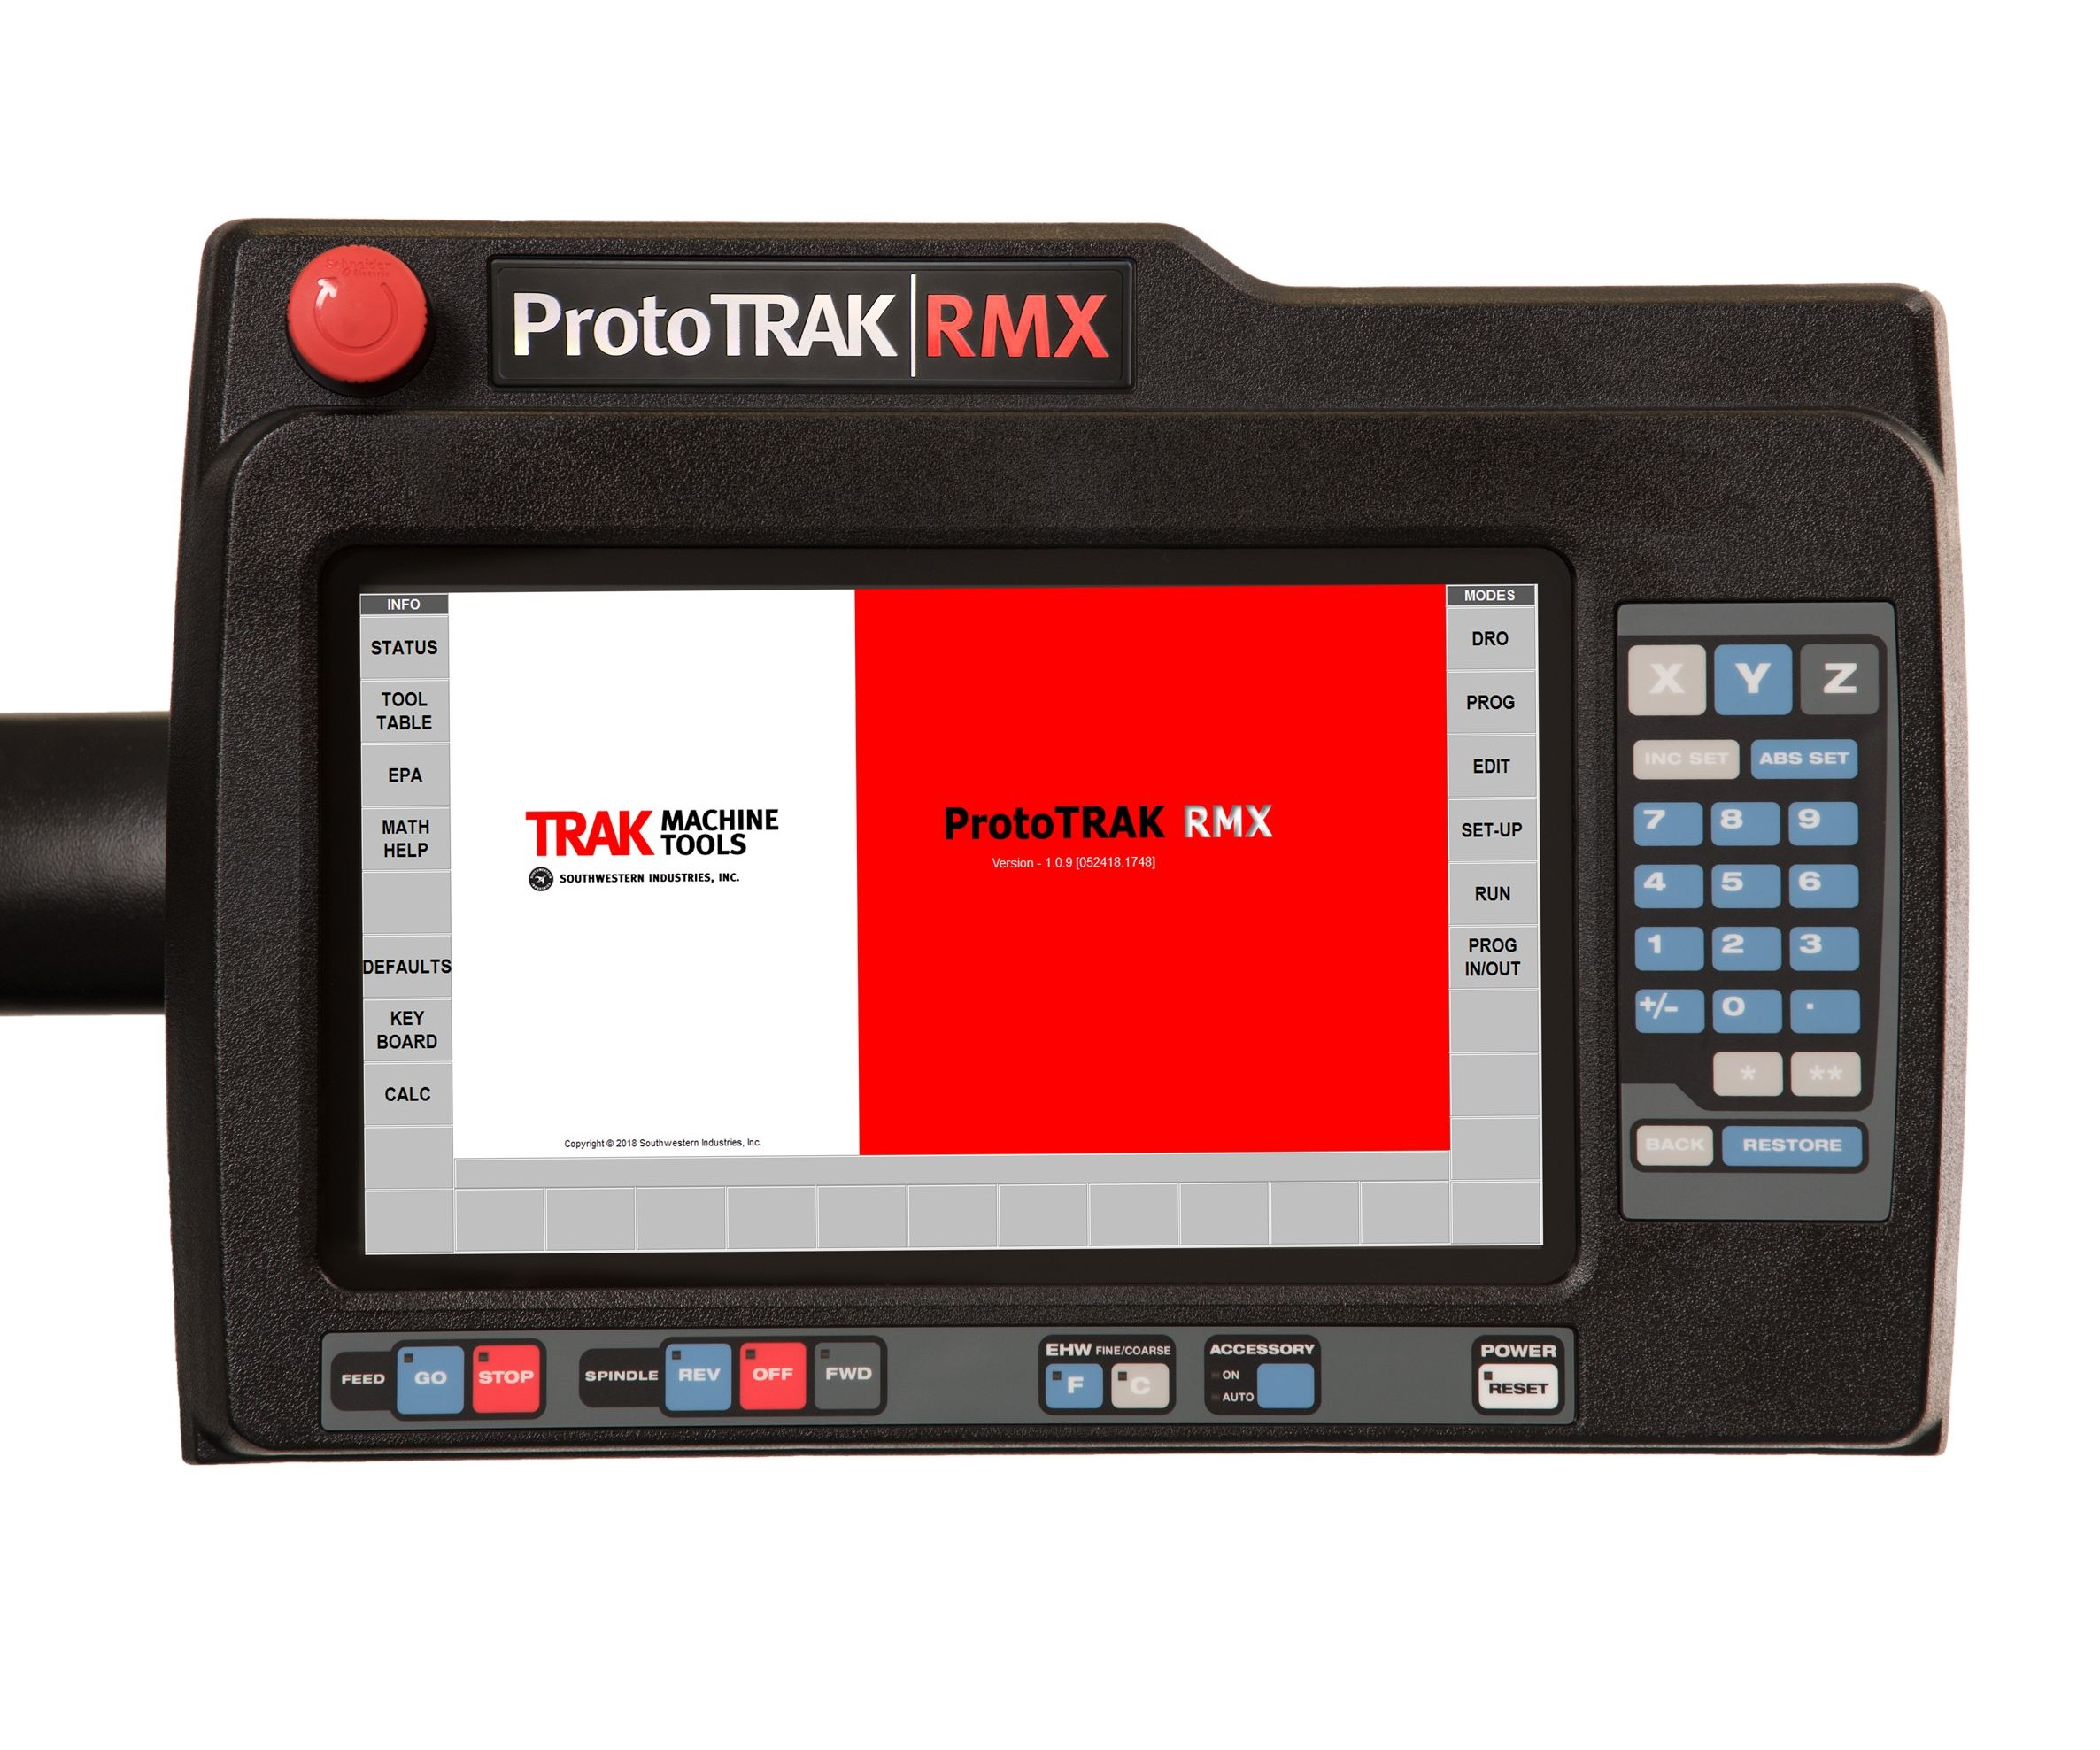 ProtoTrak RMX CNC from Trak Machine Tools/Southwestern Industries